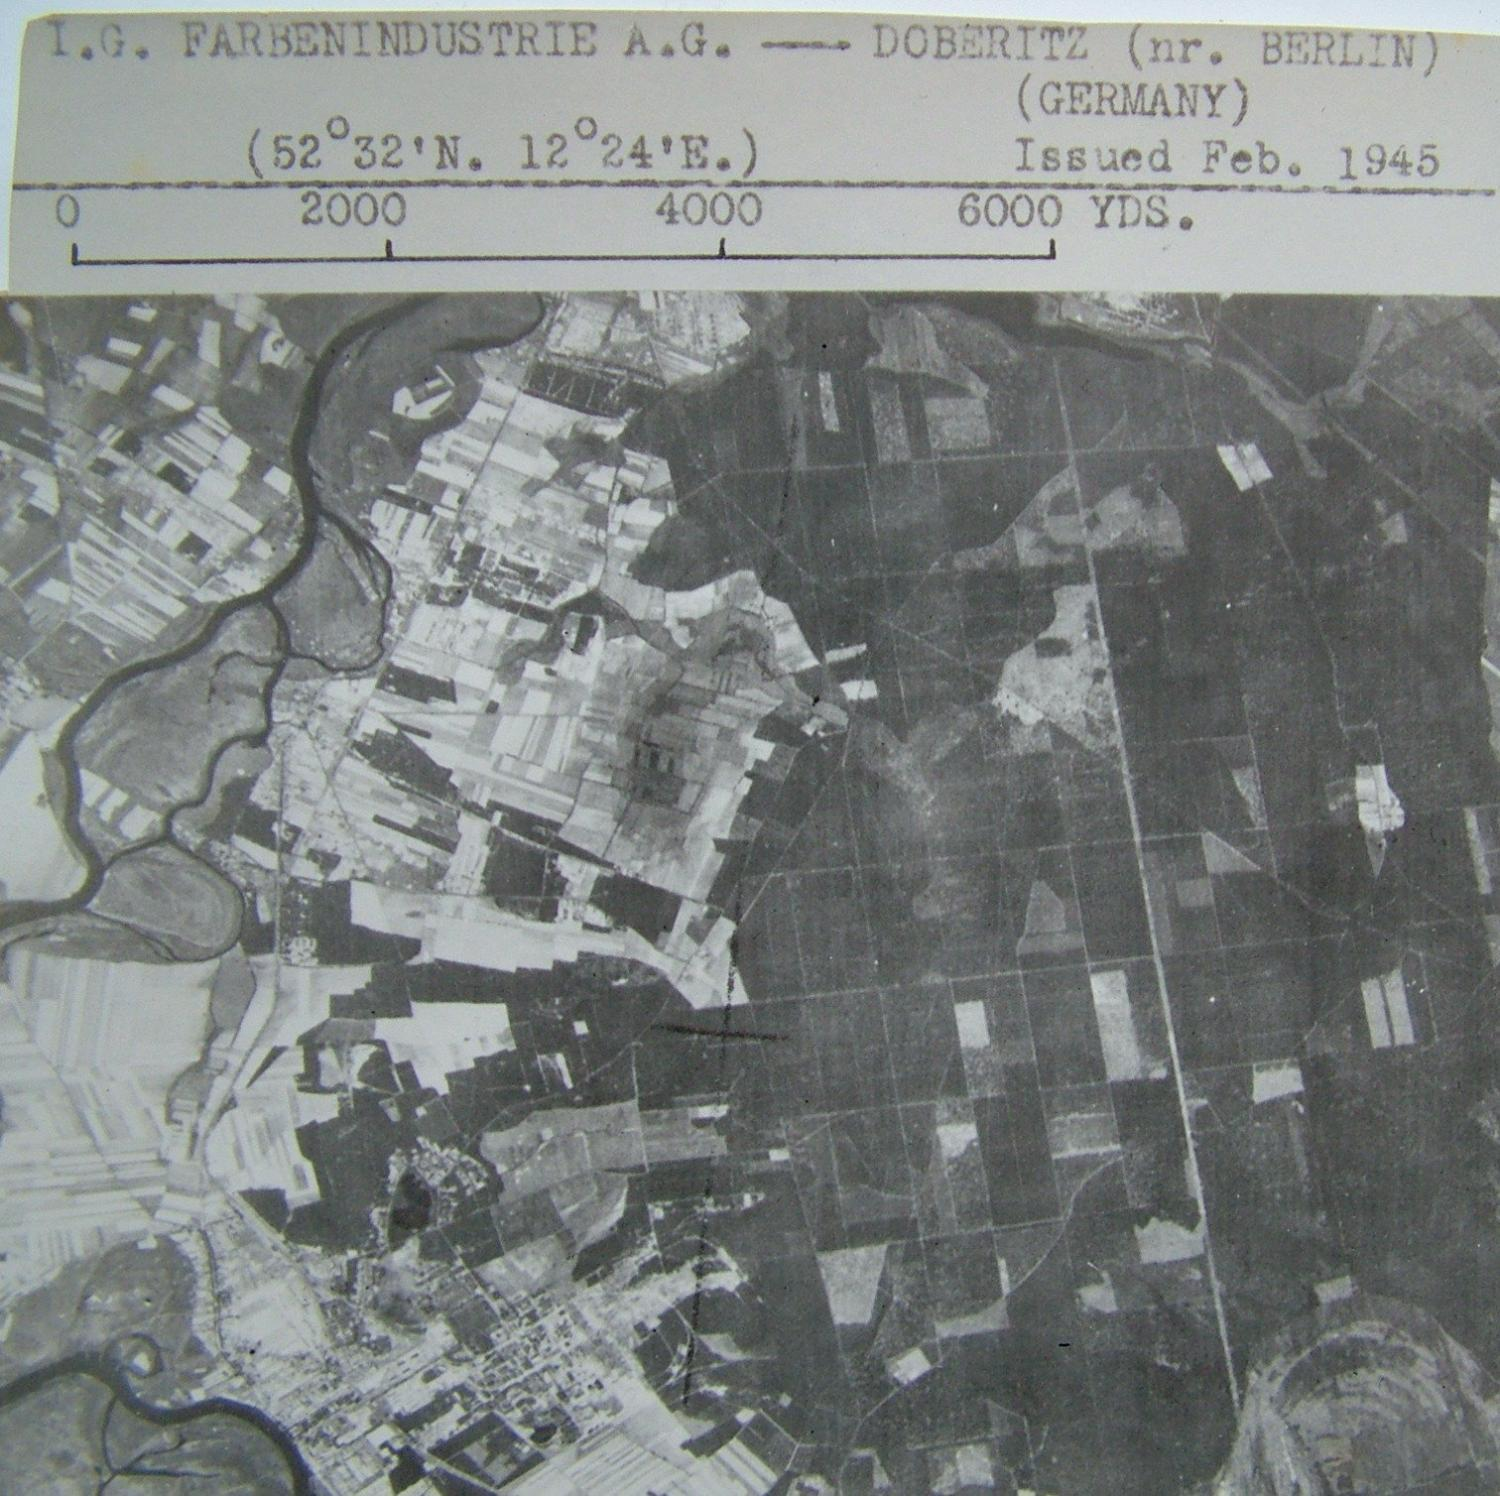 Usaaf 91st bomb group target photo 3 in ww2 usaaf photographs usaaf 91st bomb group target photo 3 picture 2 gumiabroncs Images